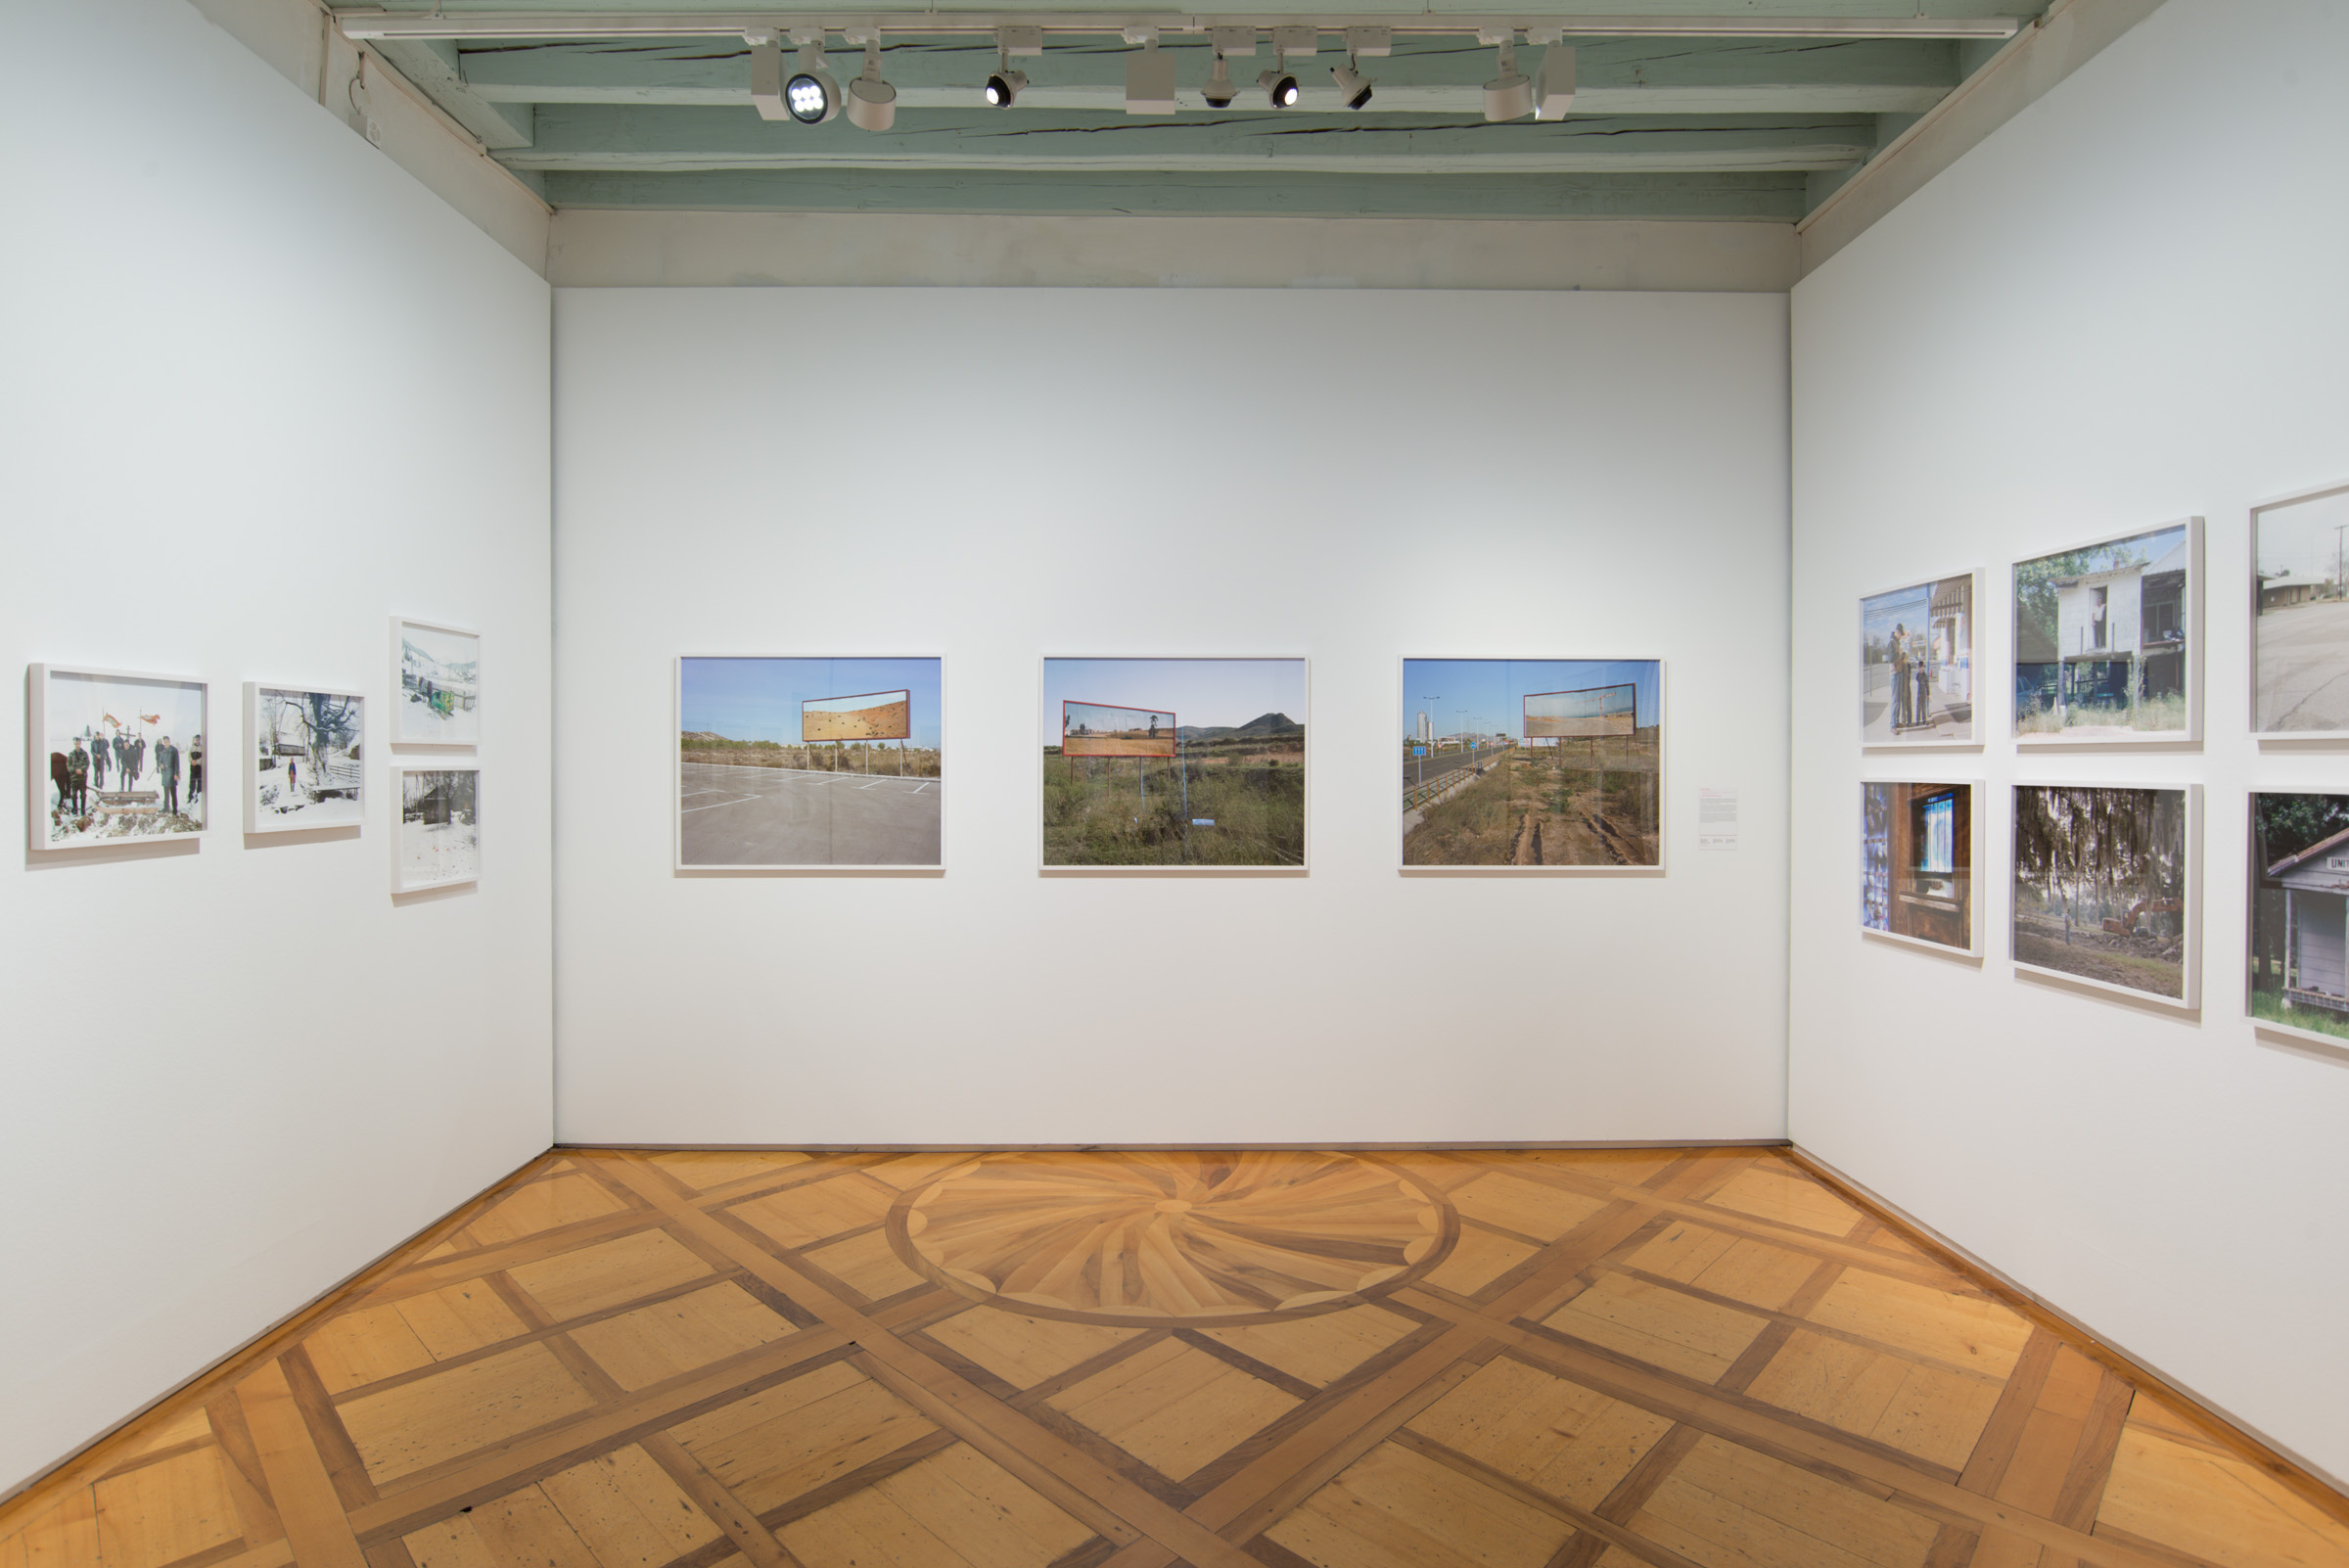 Imported Landscapes , site specific installation and C-type photographs, Corinne Silva 2010. installation view, reGeneration3, Musée de l'Elysée